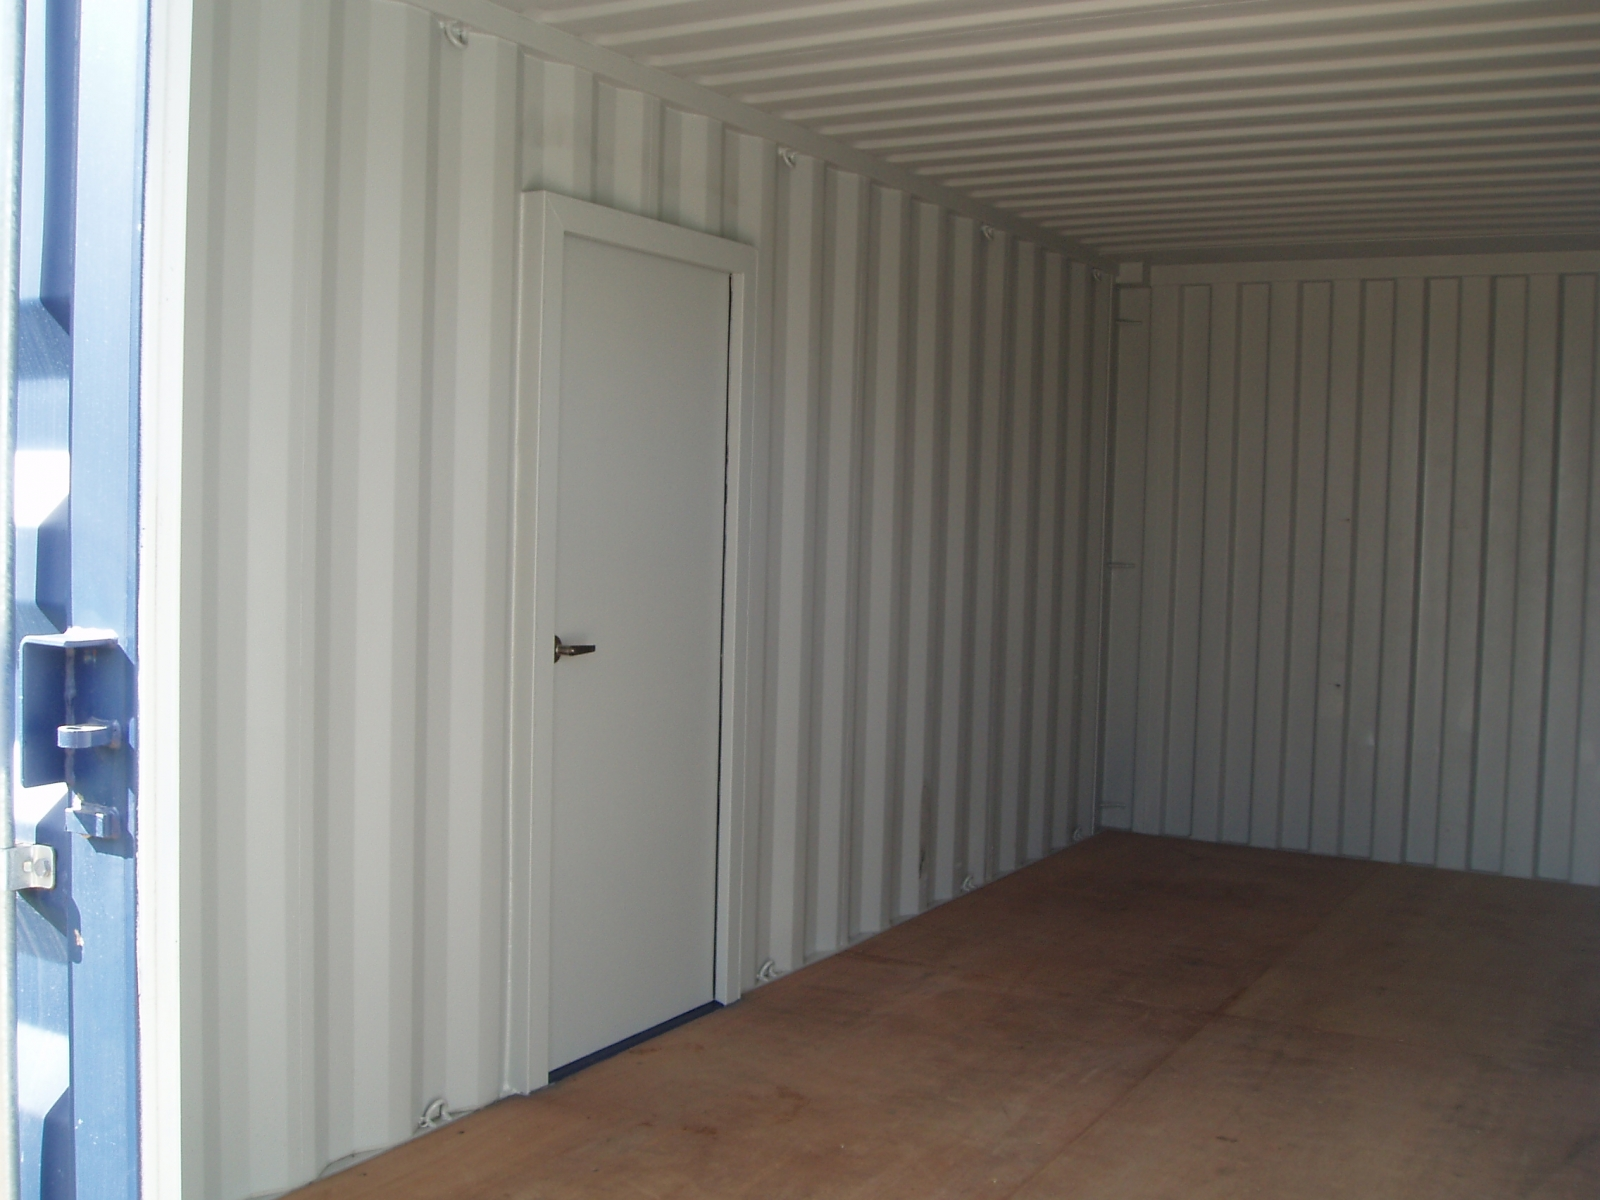 Container mods 2 (3)